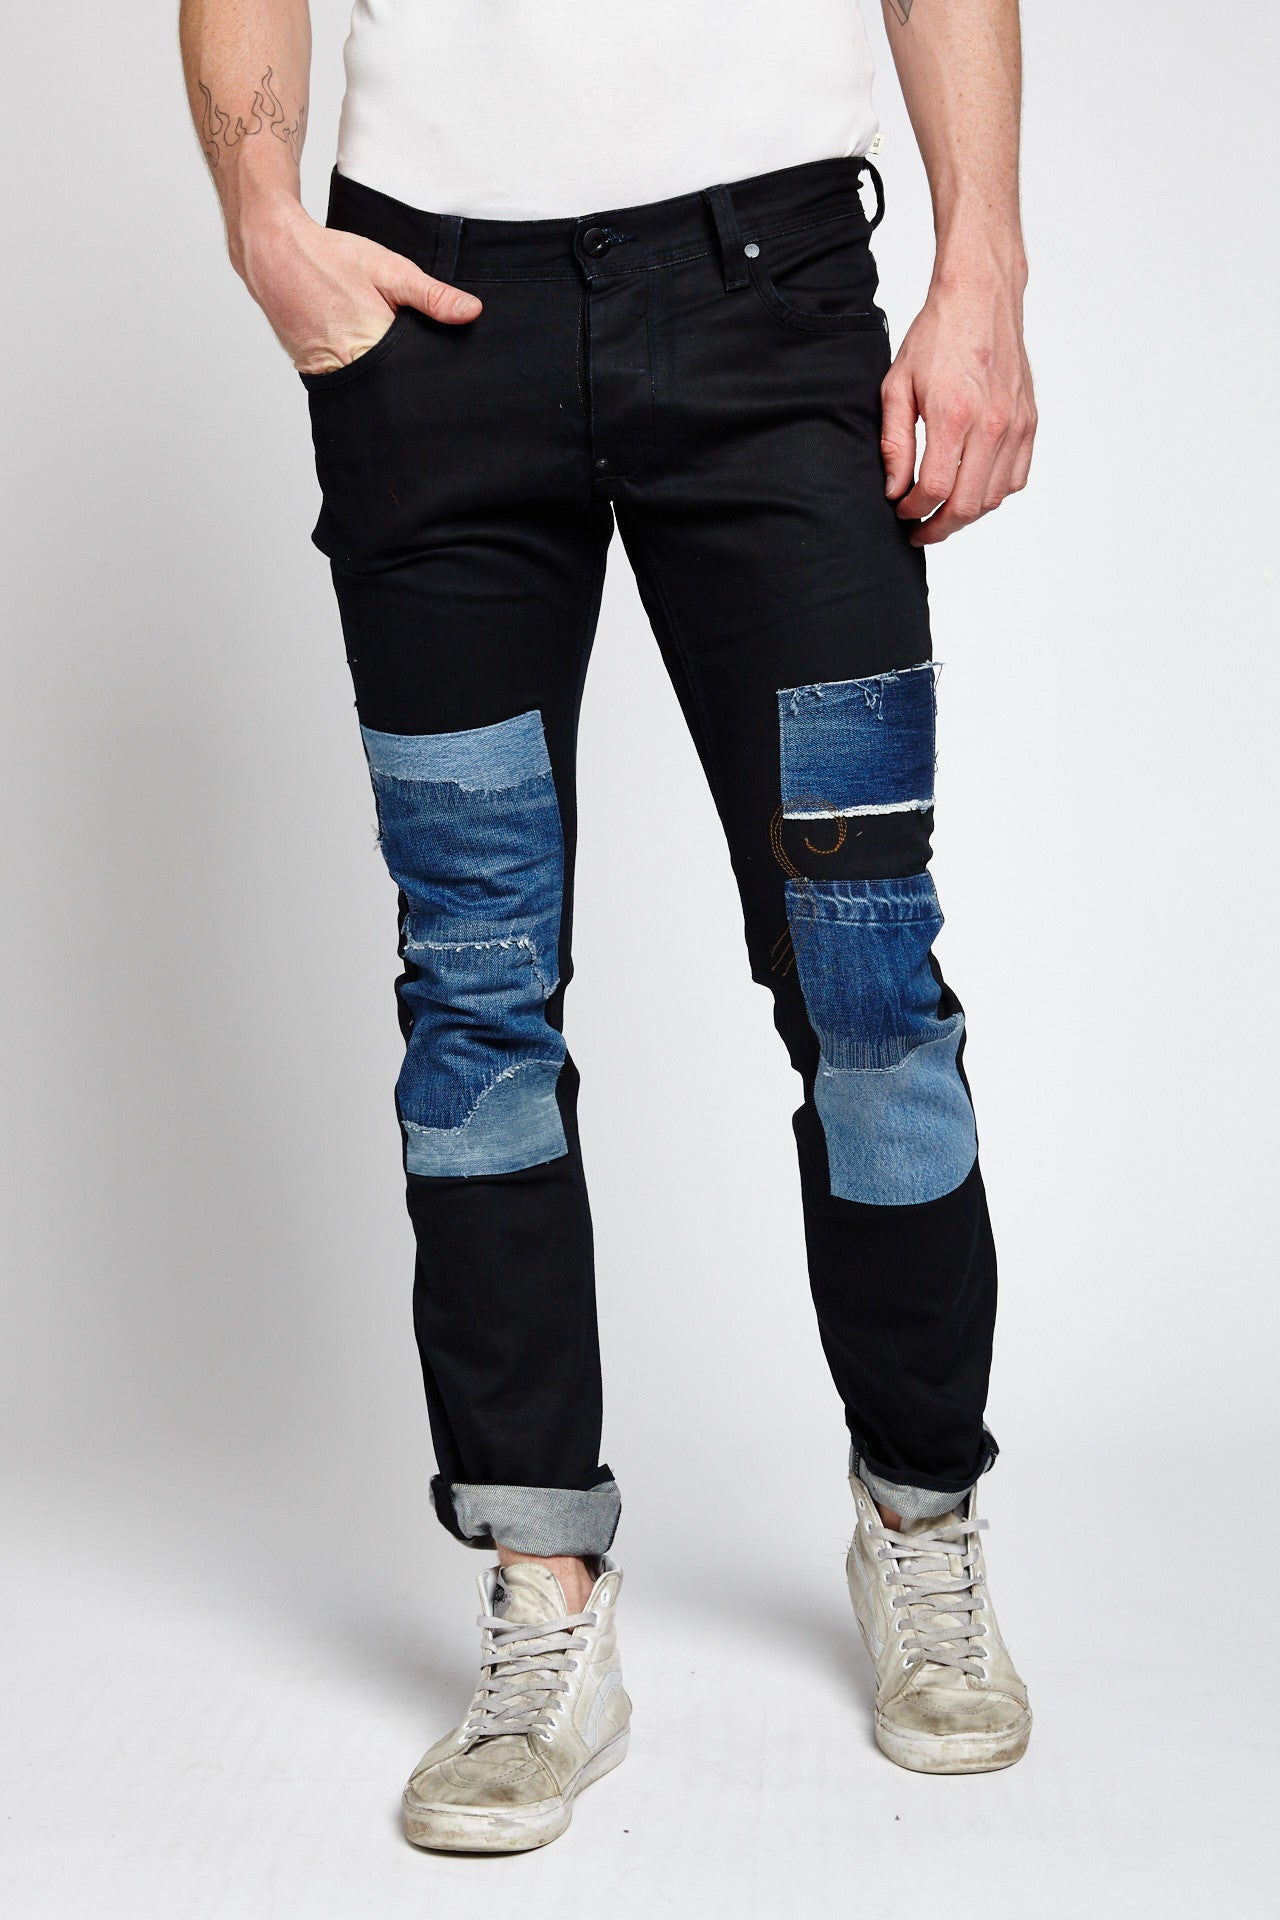 G-STAR RAW RECONSTRUCTED PATCHWORK COTTON BLACK 36 W JEANS-BOTTOMS-Mundane Official-36-BLACK-Mundane Official